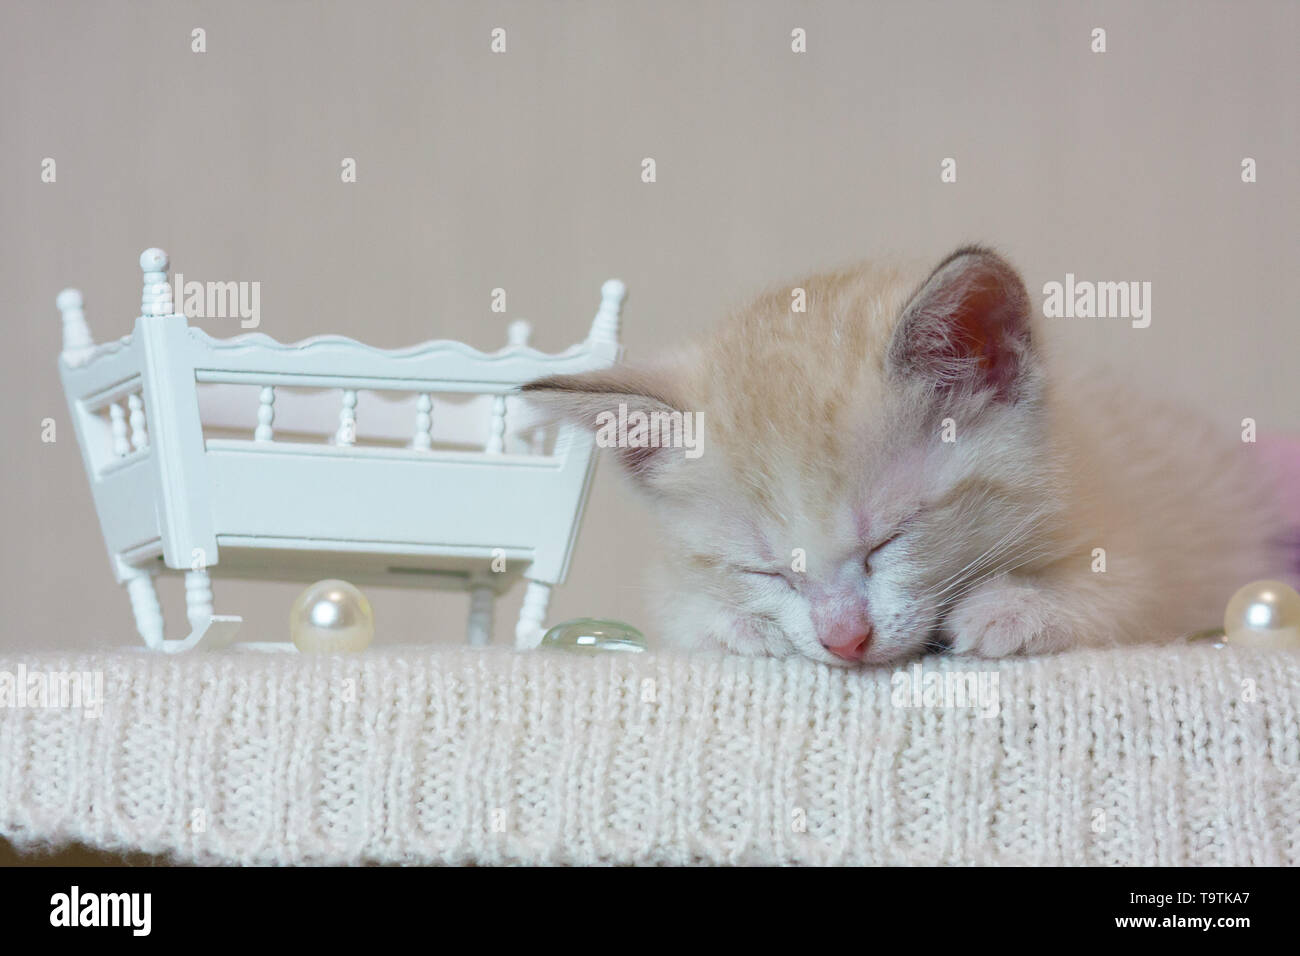 The concept of sleep. A small kitten sleeping. The animal is resting. The white cat dreams. - Stock Image